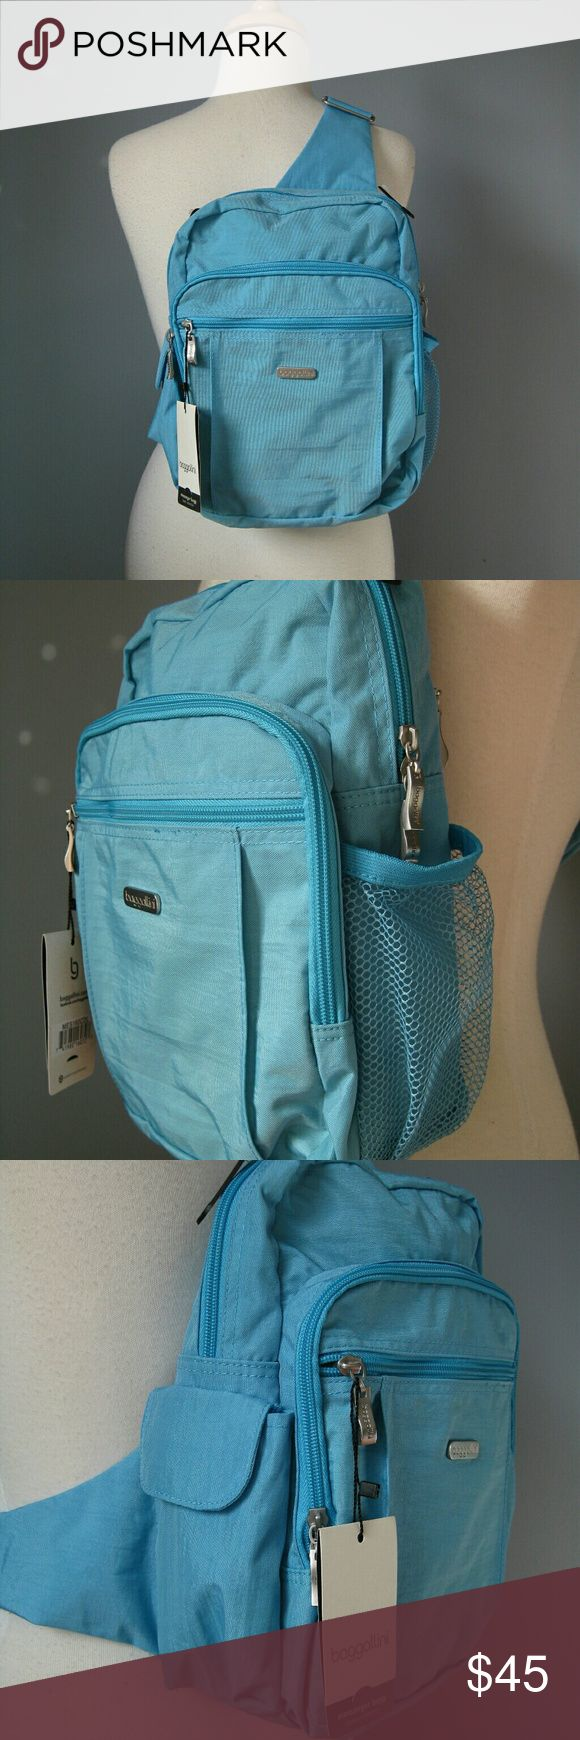 """NWT Baggalini Turquoise one shoulder Backpack Roomy organizer backpack. Brand new. 9"""" x 12"""" x 7"""" . Adjustable strap. Baggallini Bags Backpacks"""